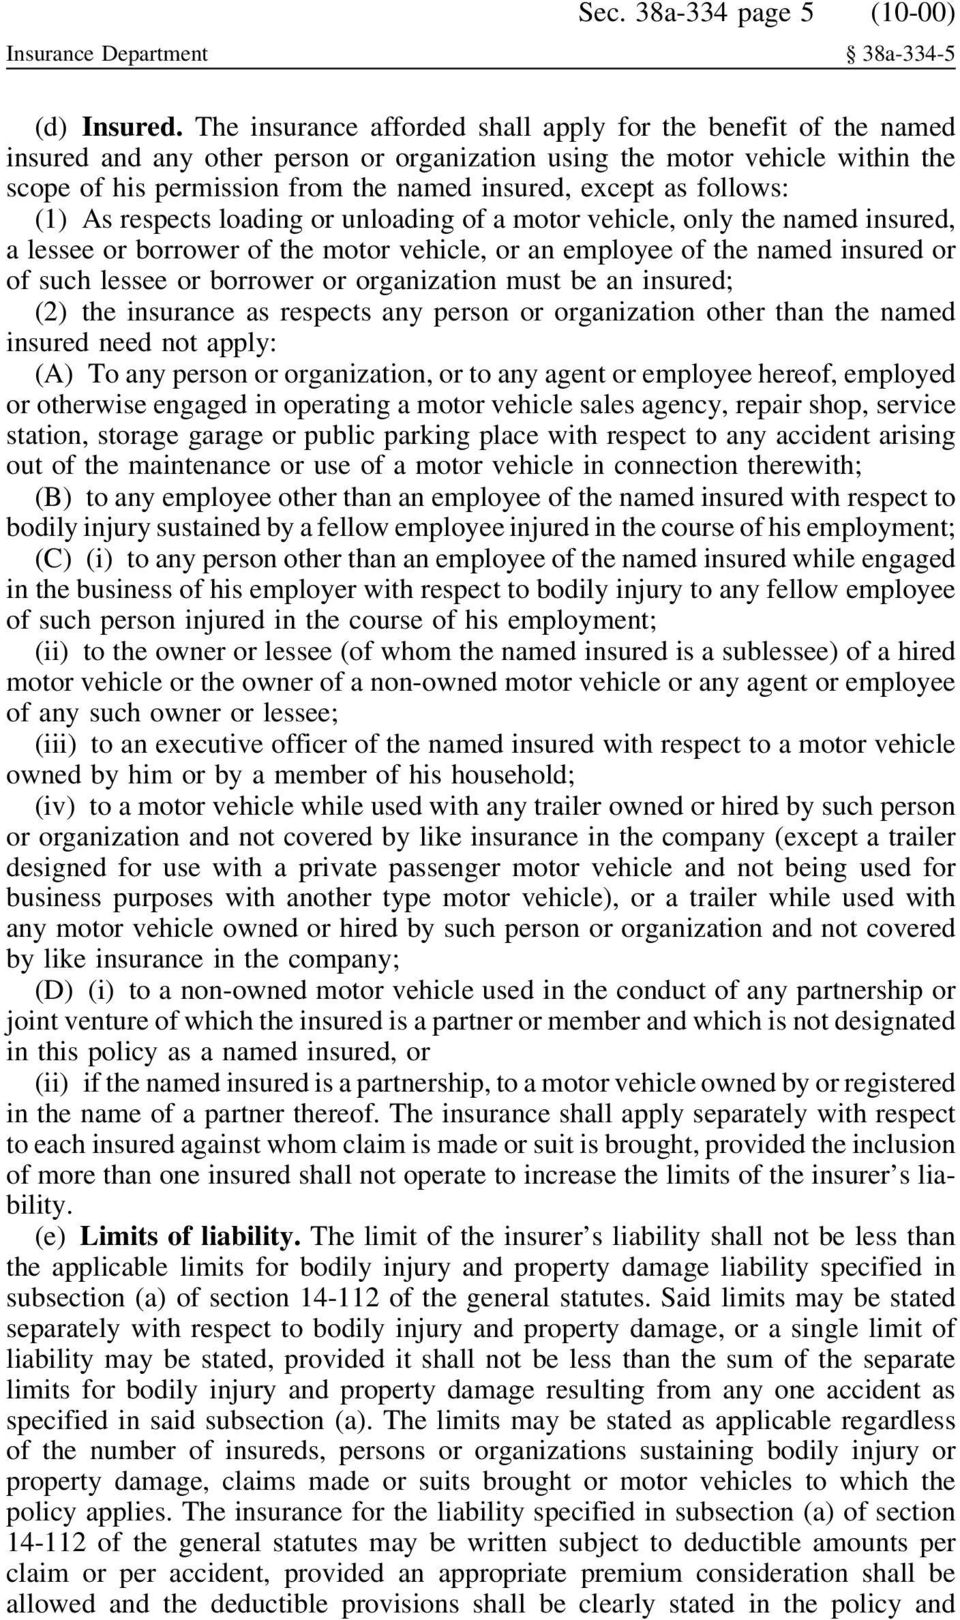 as follows: (1) As respects loading or unloading of a motor vehicle, only the named insured, a lessee or borrower of the motor vehicle, or an employee of the named insured or of such lessee or